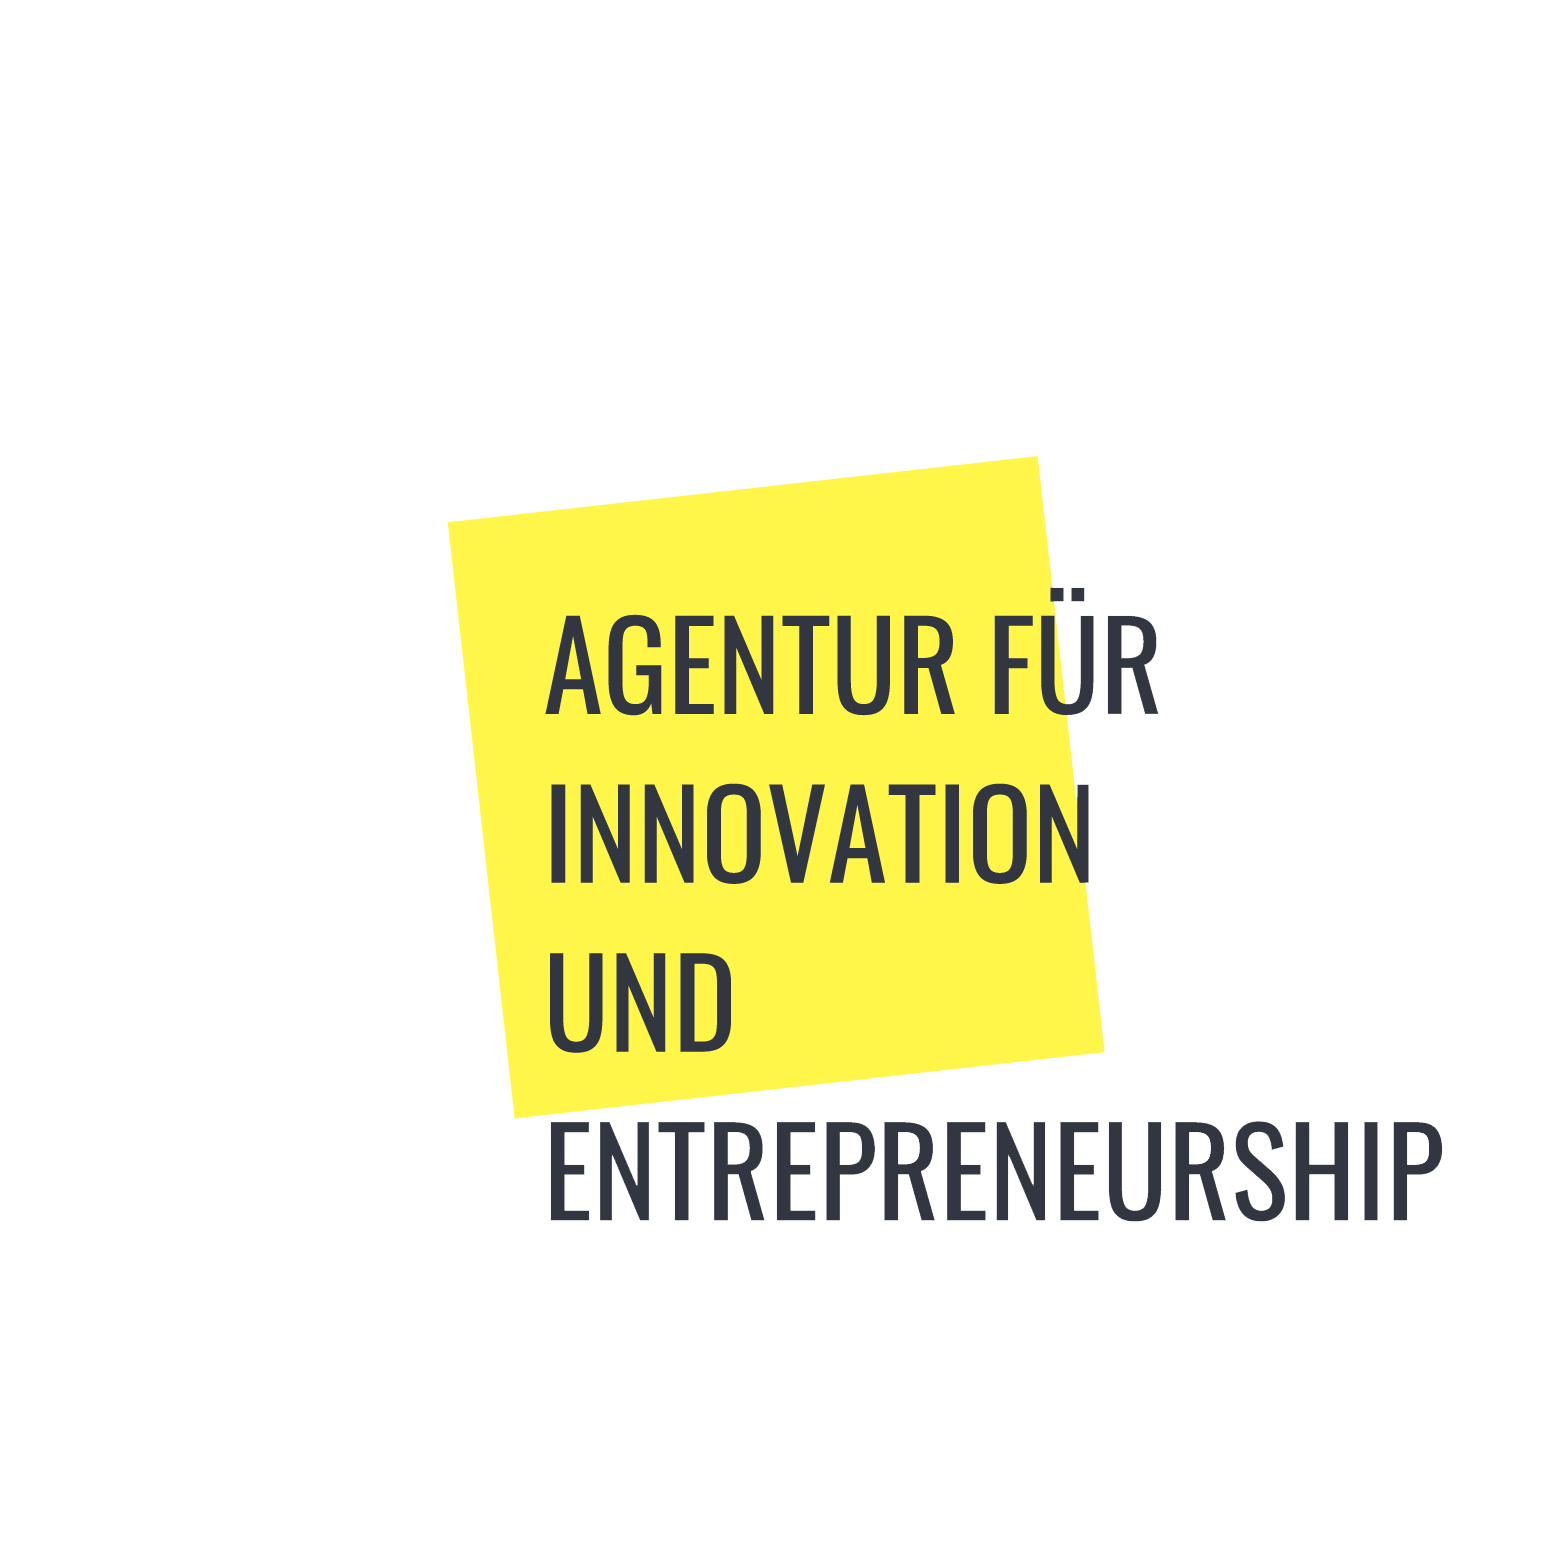 logo agentur für innovation